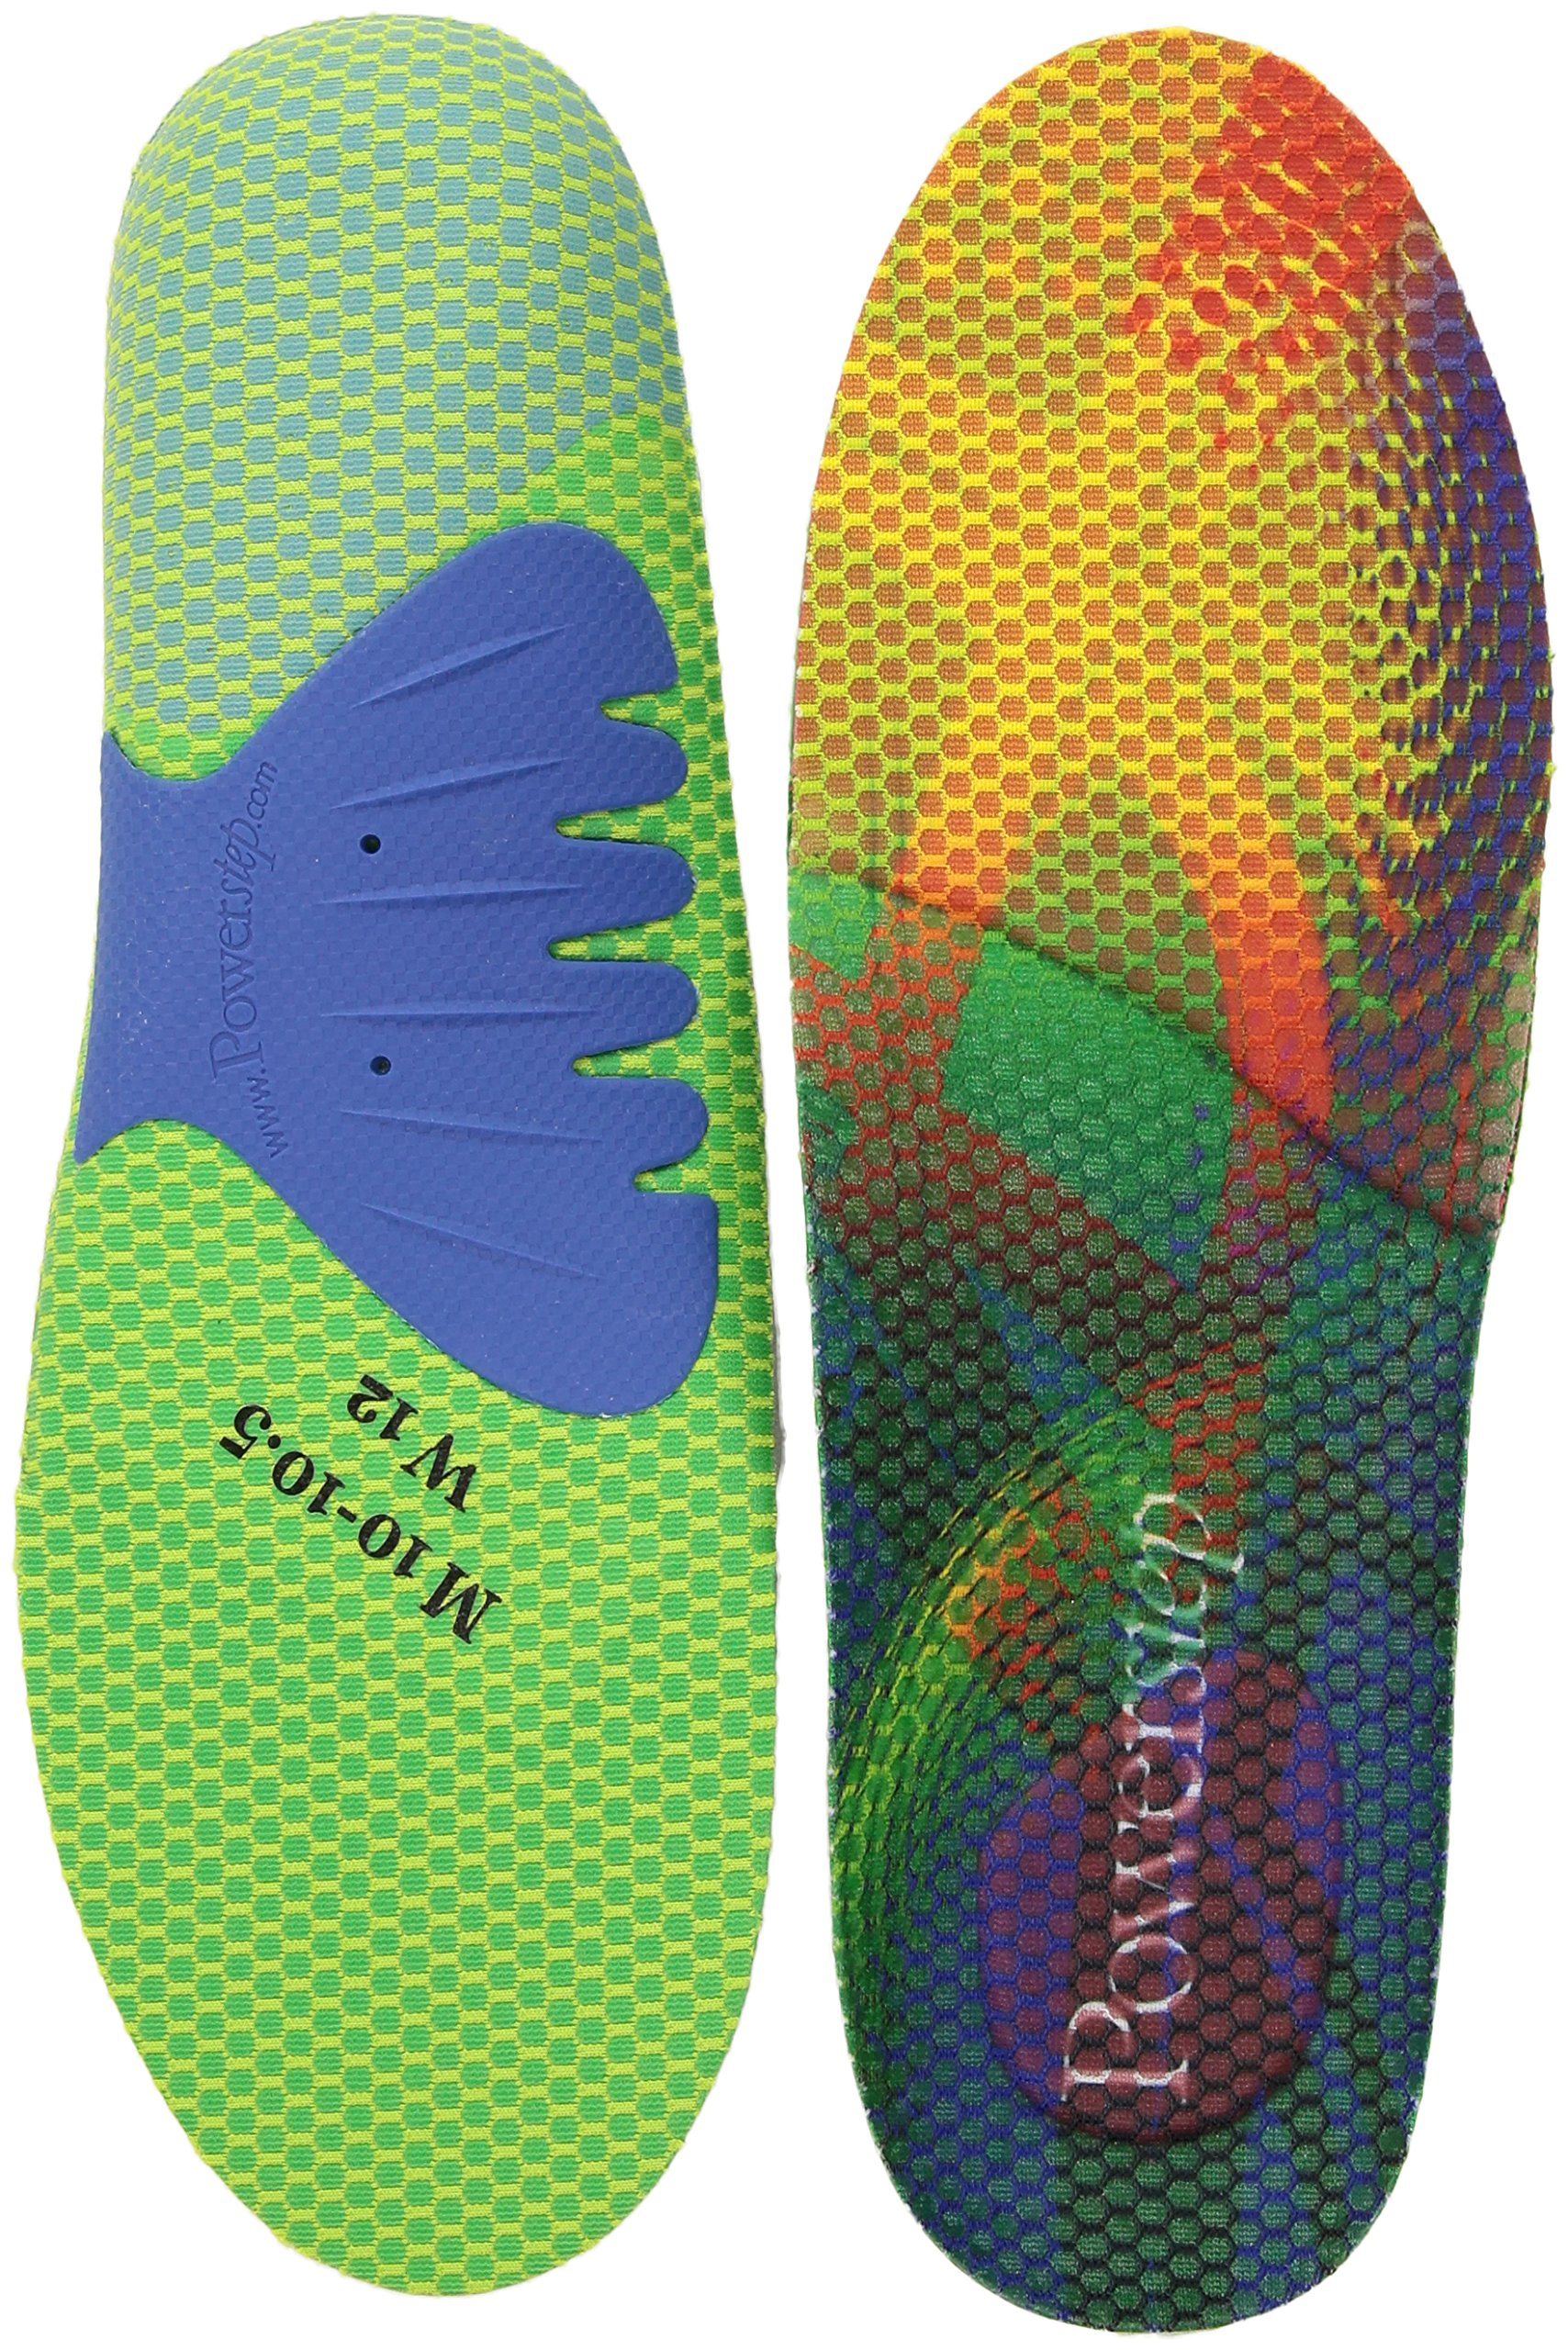 Powerstep Endurance Insole, Multicolor, Men's 8-8.5, Women's 10-10.5 Regular US by Powerstep